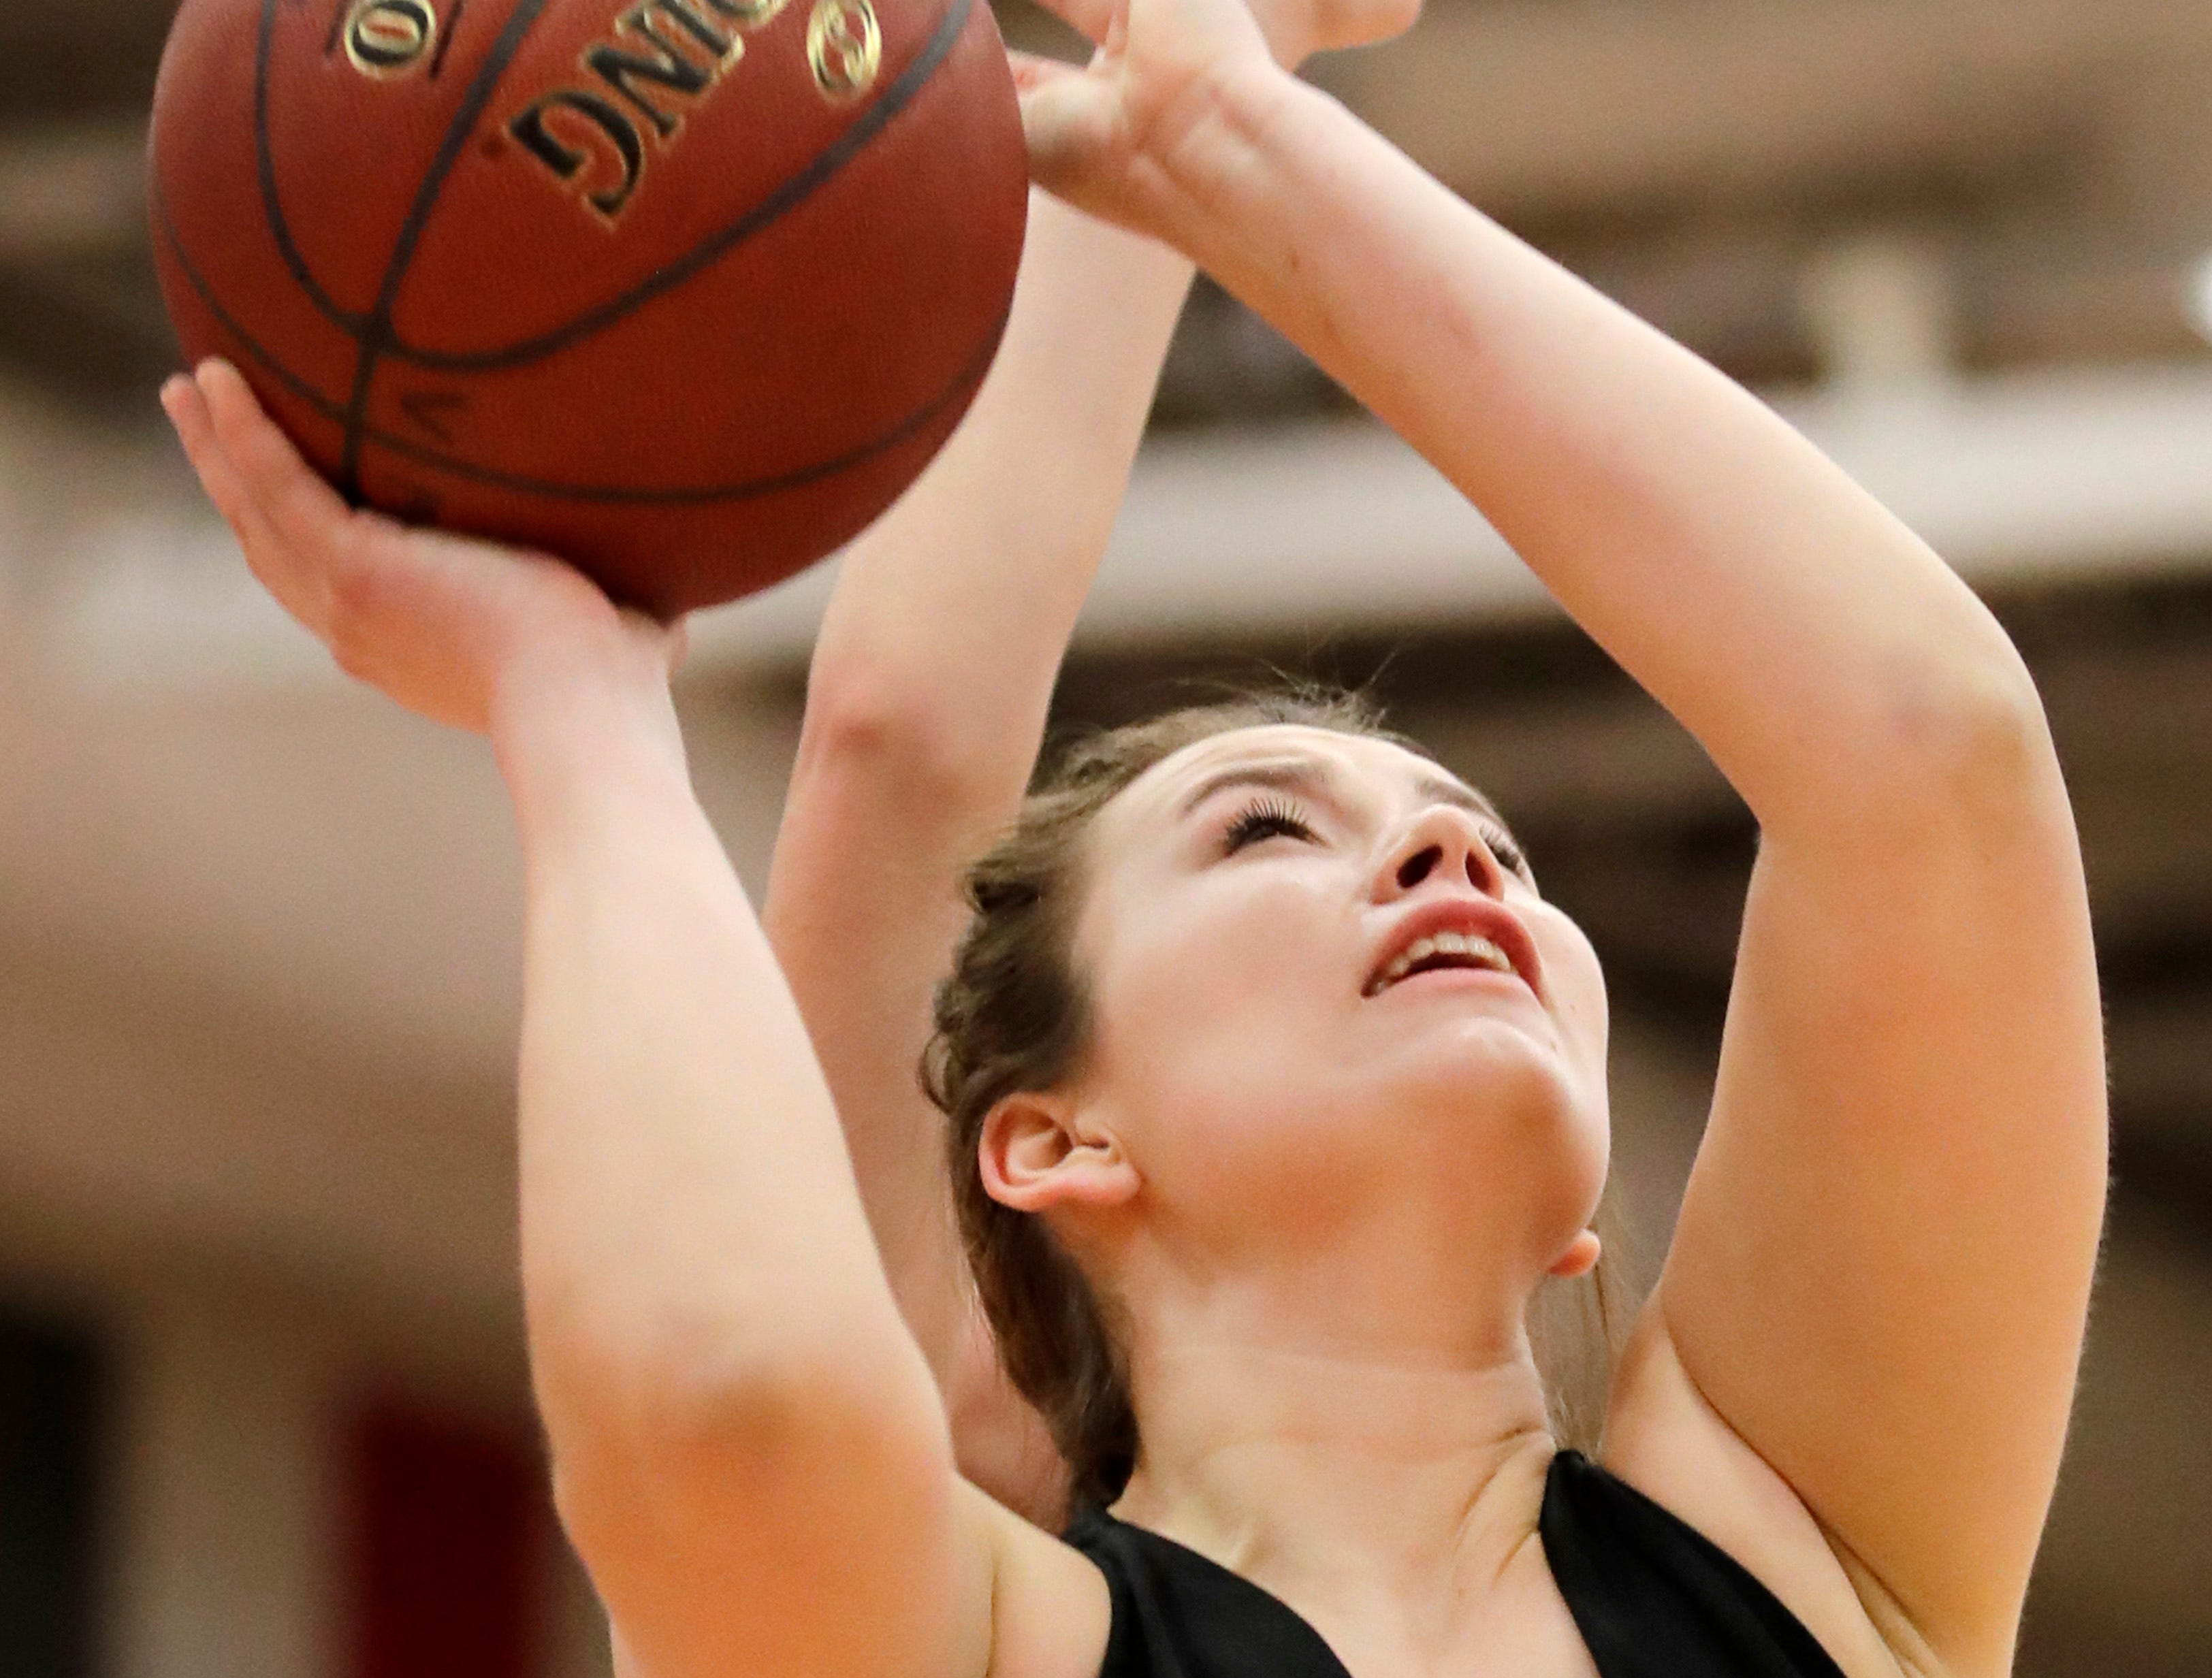 Kaukauna High School's Gabby Djupstrom goes for a shot against Kimberly High School Friday, Dec. 7, 2018, in Kimberly, Wis.Danny Damiani/USA TODAY NETWORK-Wisconsin